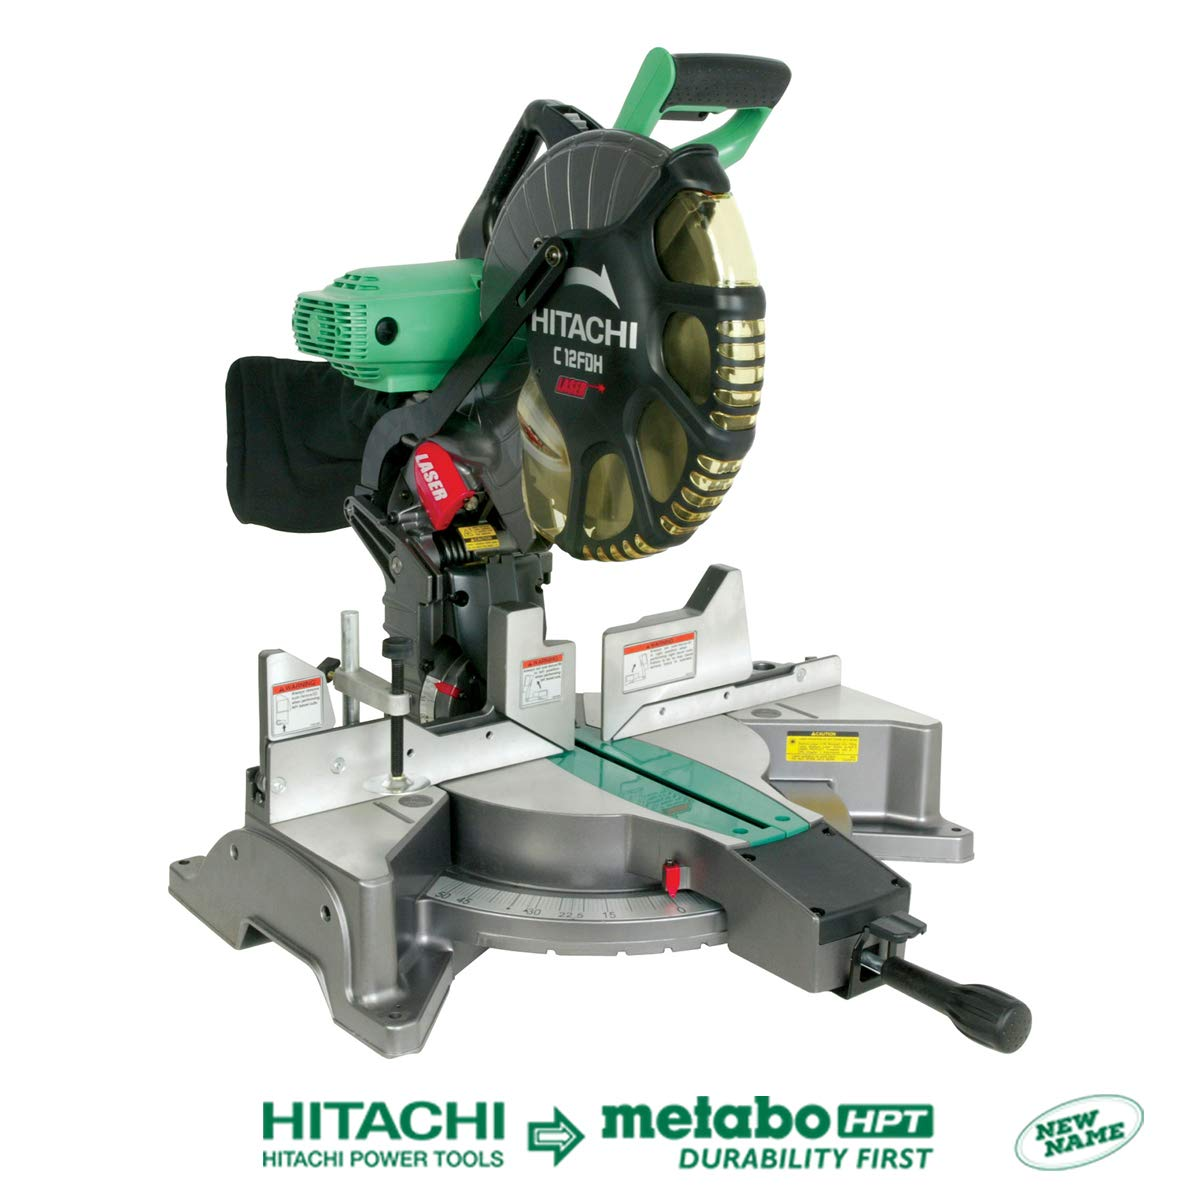 Hitachi C12FDH 15 Amp 12-Inch Dual Bevel Miter Saw with Laser Discontinued by Manufacturer